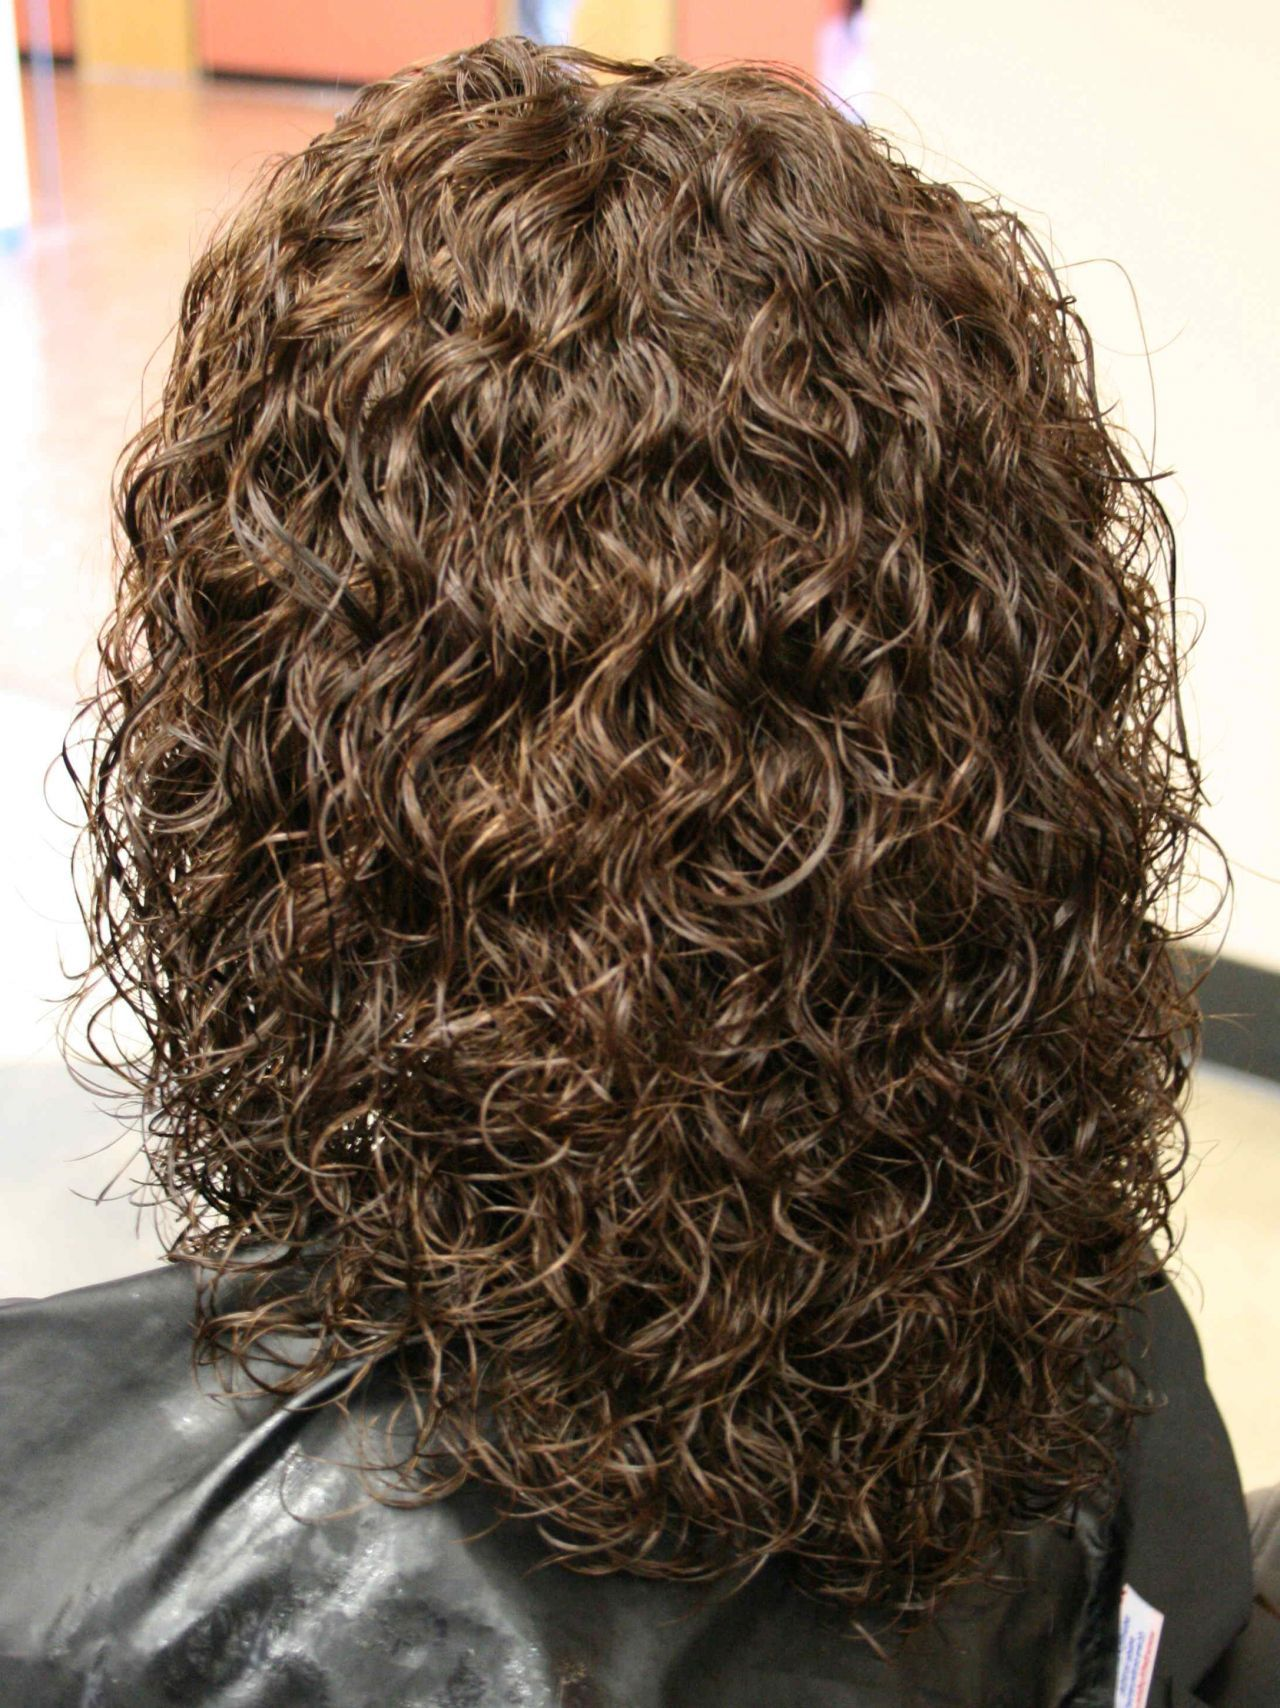 Swell 1000 Images About Hairstyles On Pinterest Curly Perm Loose Short Hairstyles Gunalazisus